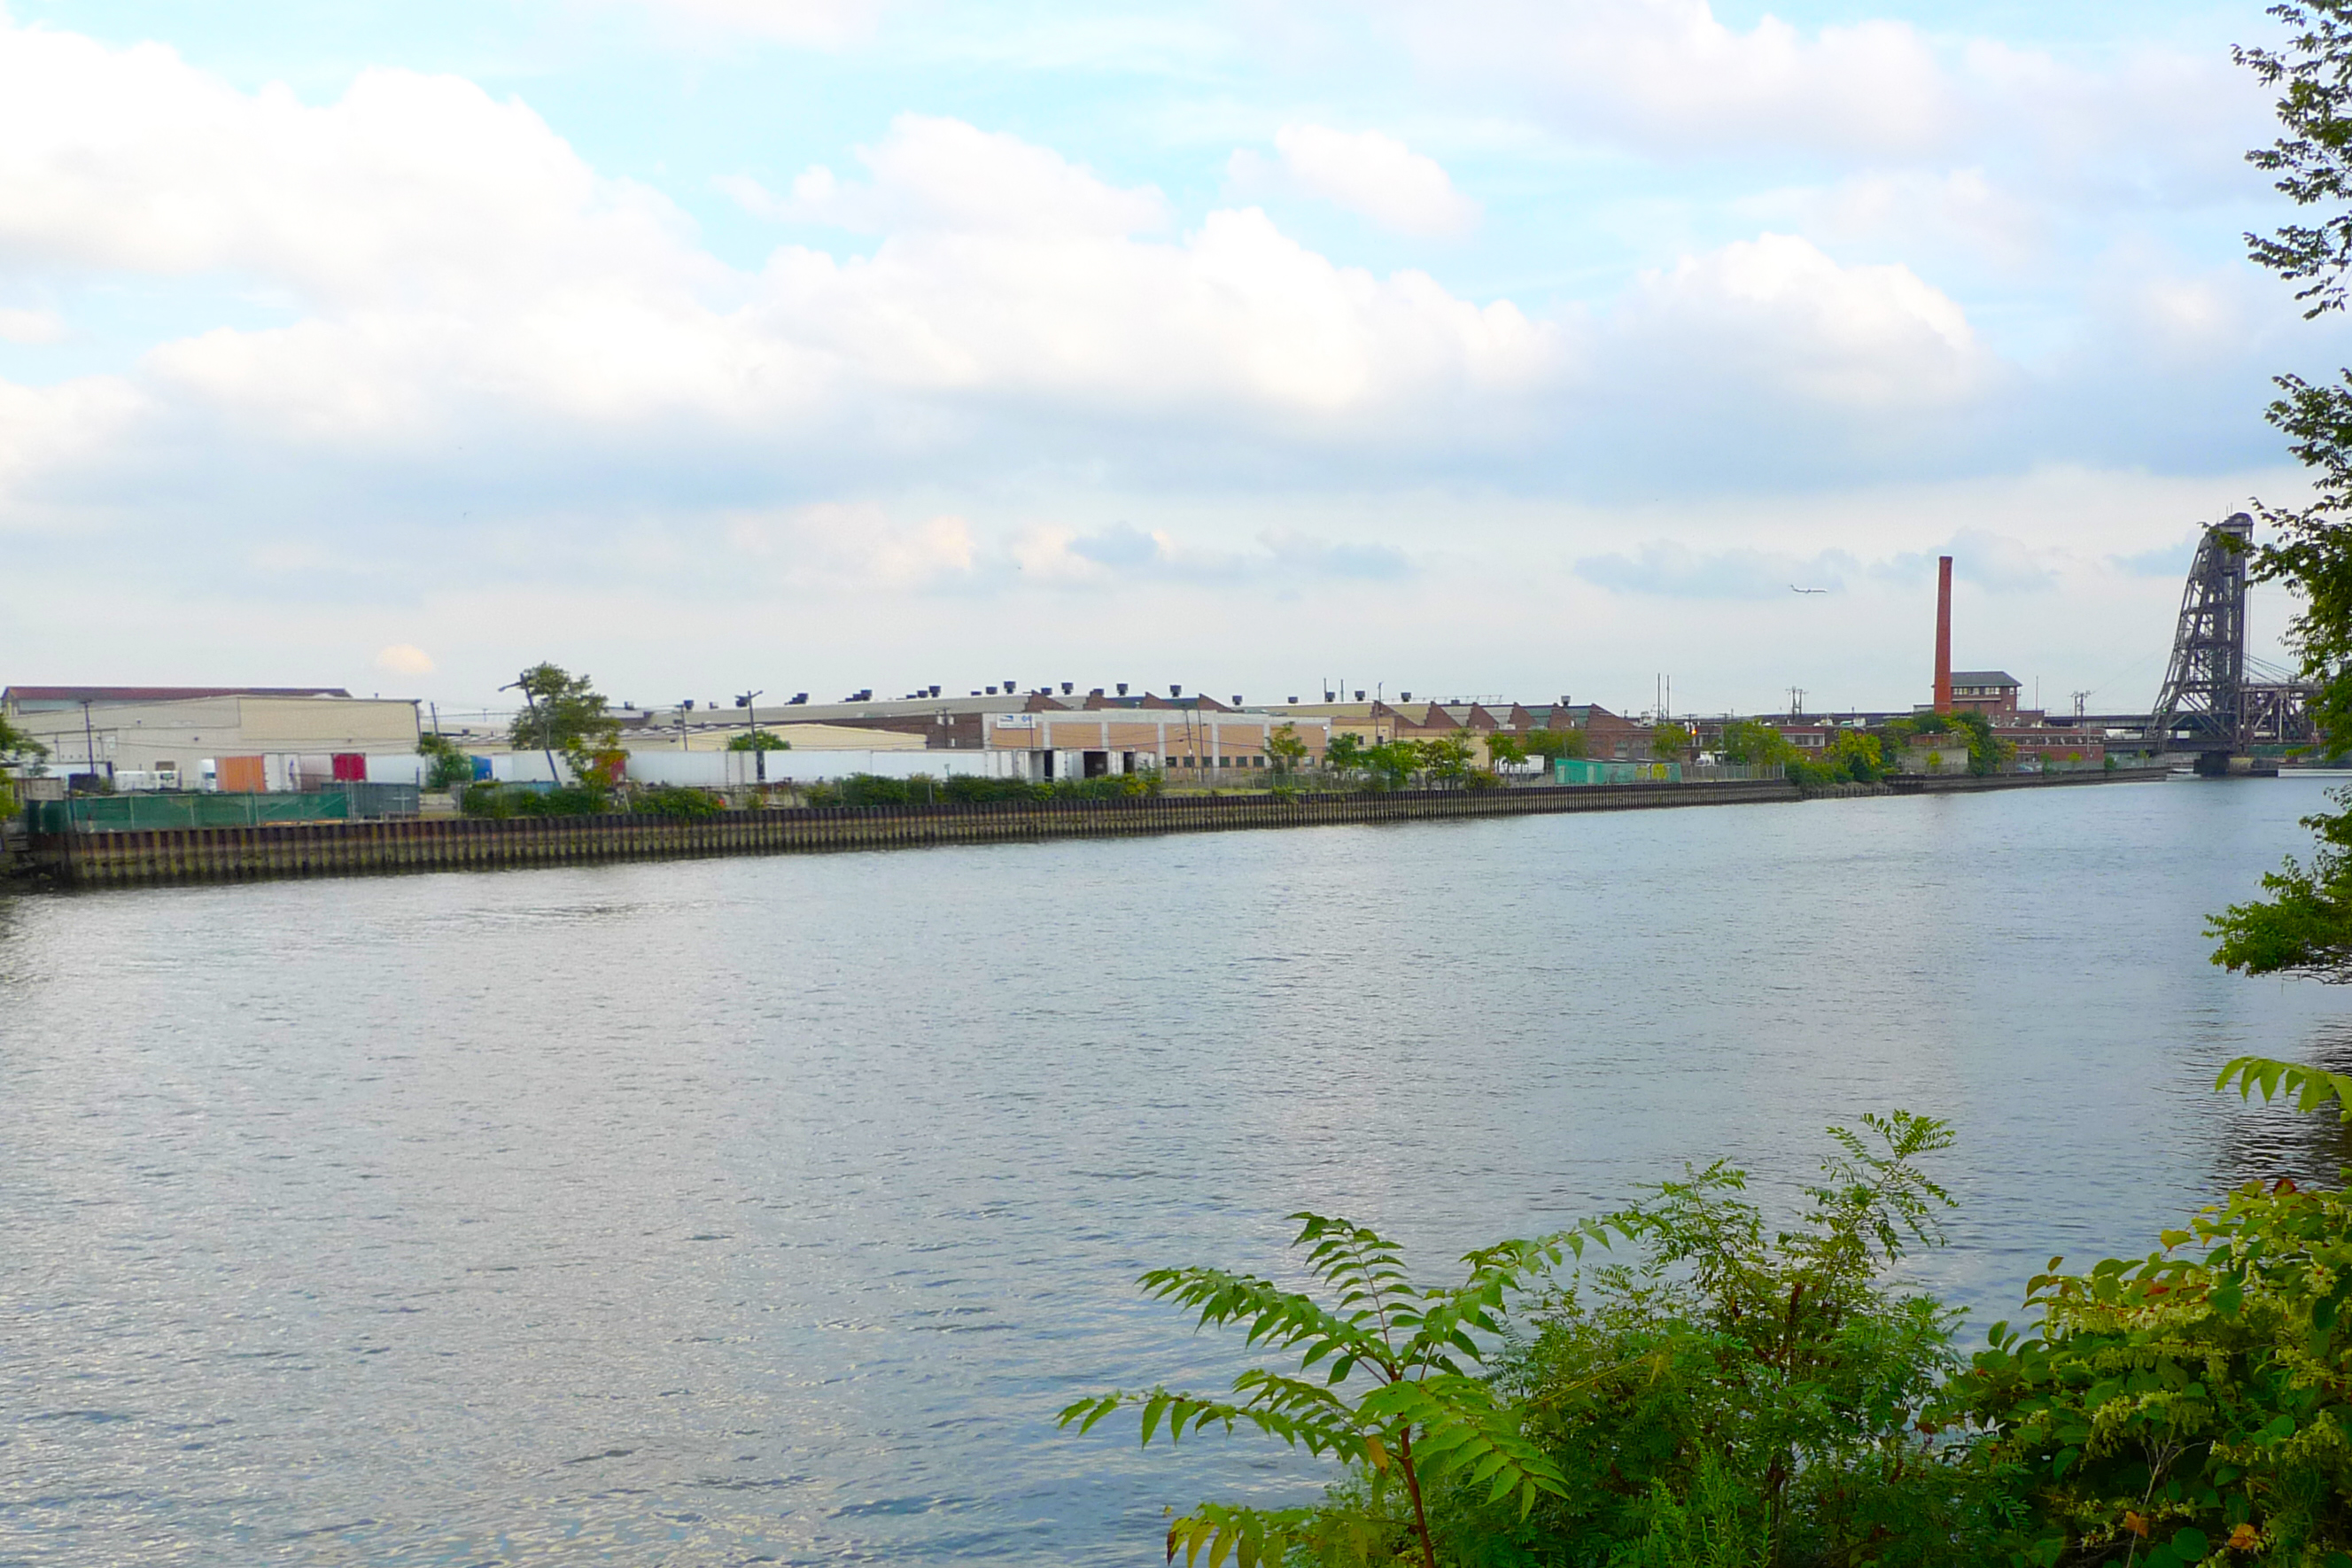 Industrial facilities line the Lower Passaic River.